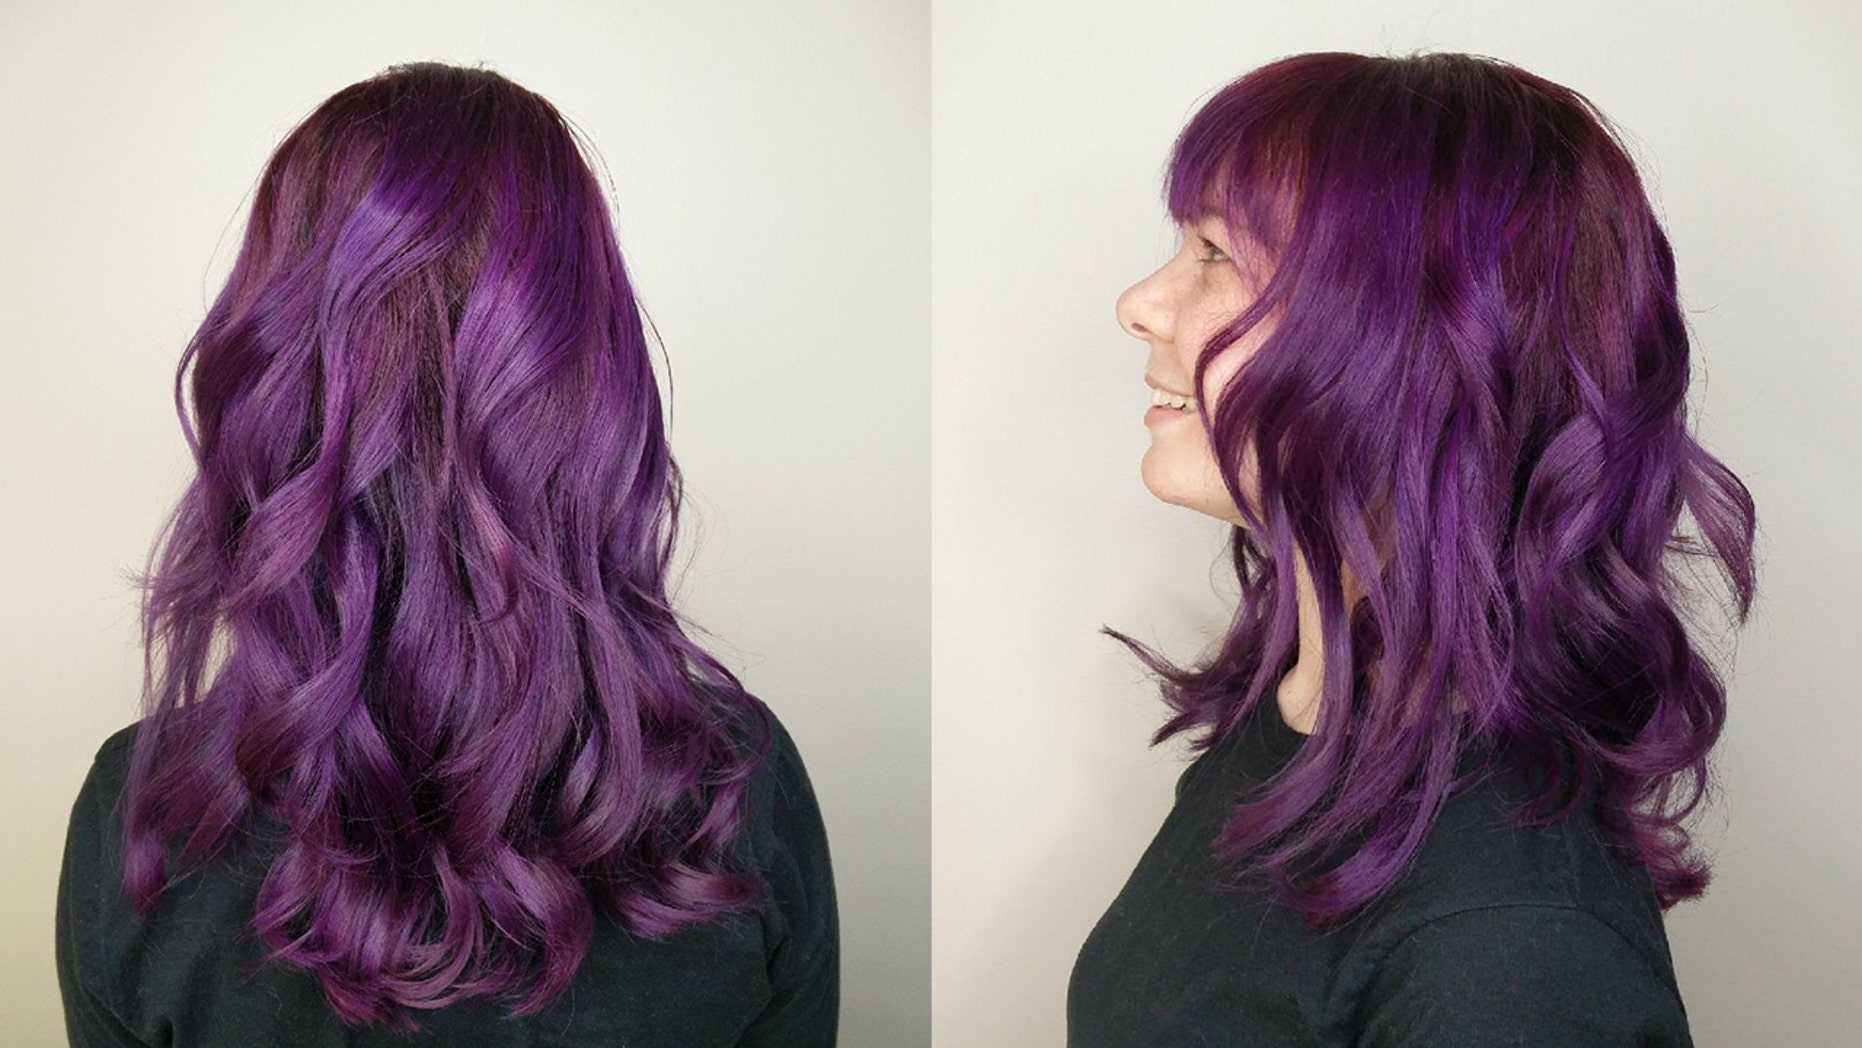 Pantone's color of the year, Ultra Violet, has made its way into salons. Learn how to achieve the trendy look with tips from an expert.